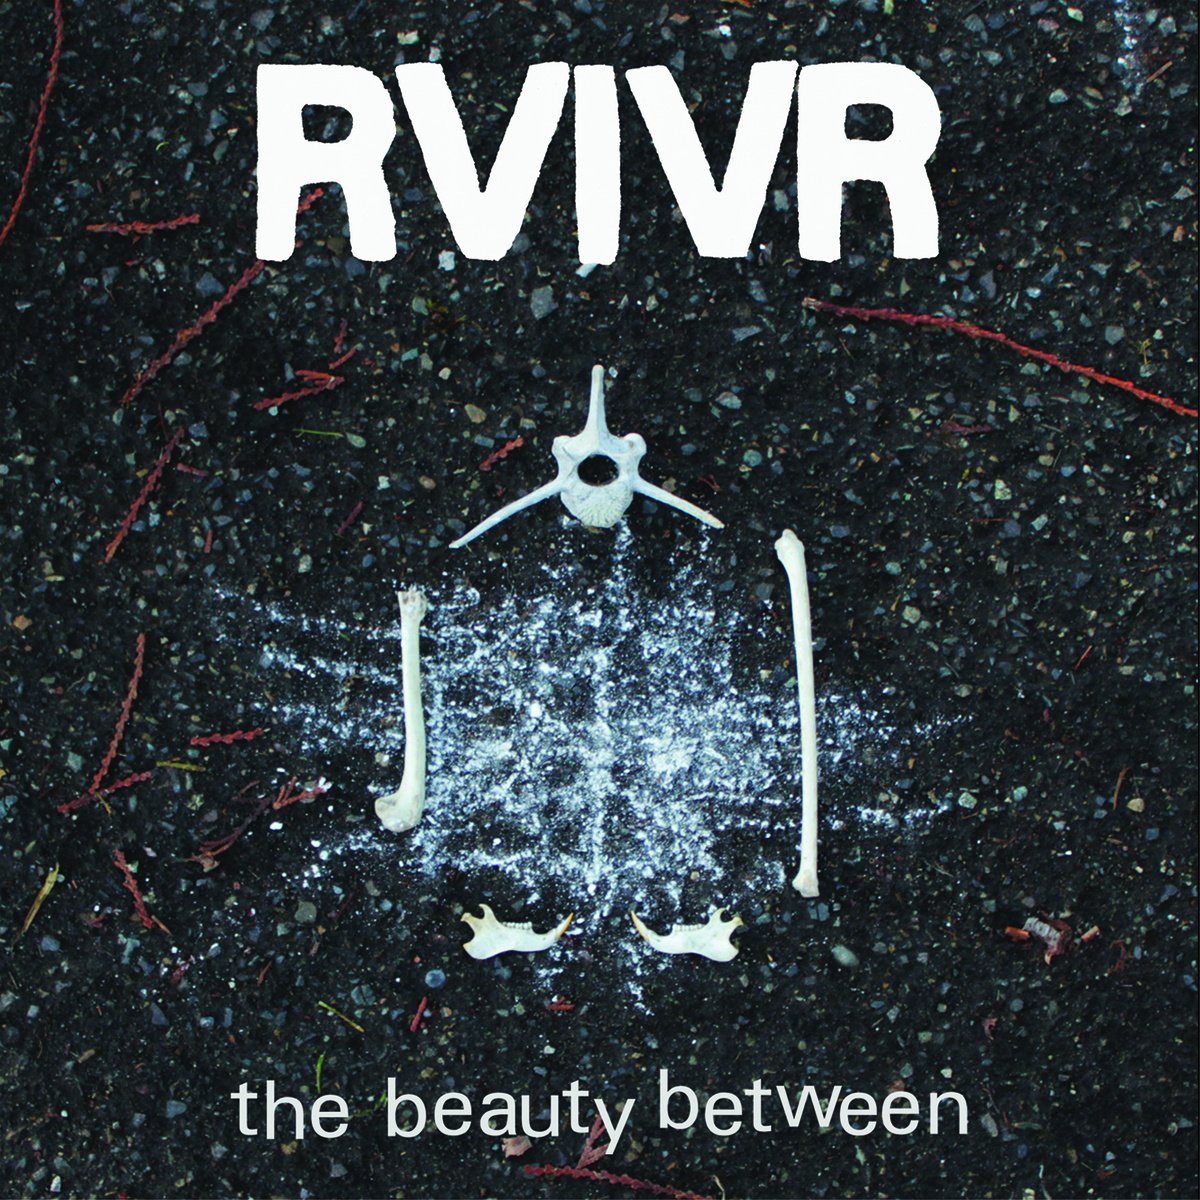 rvivr-the-beauty-between